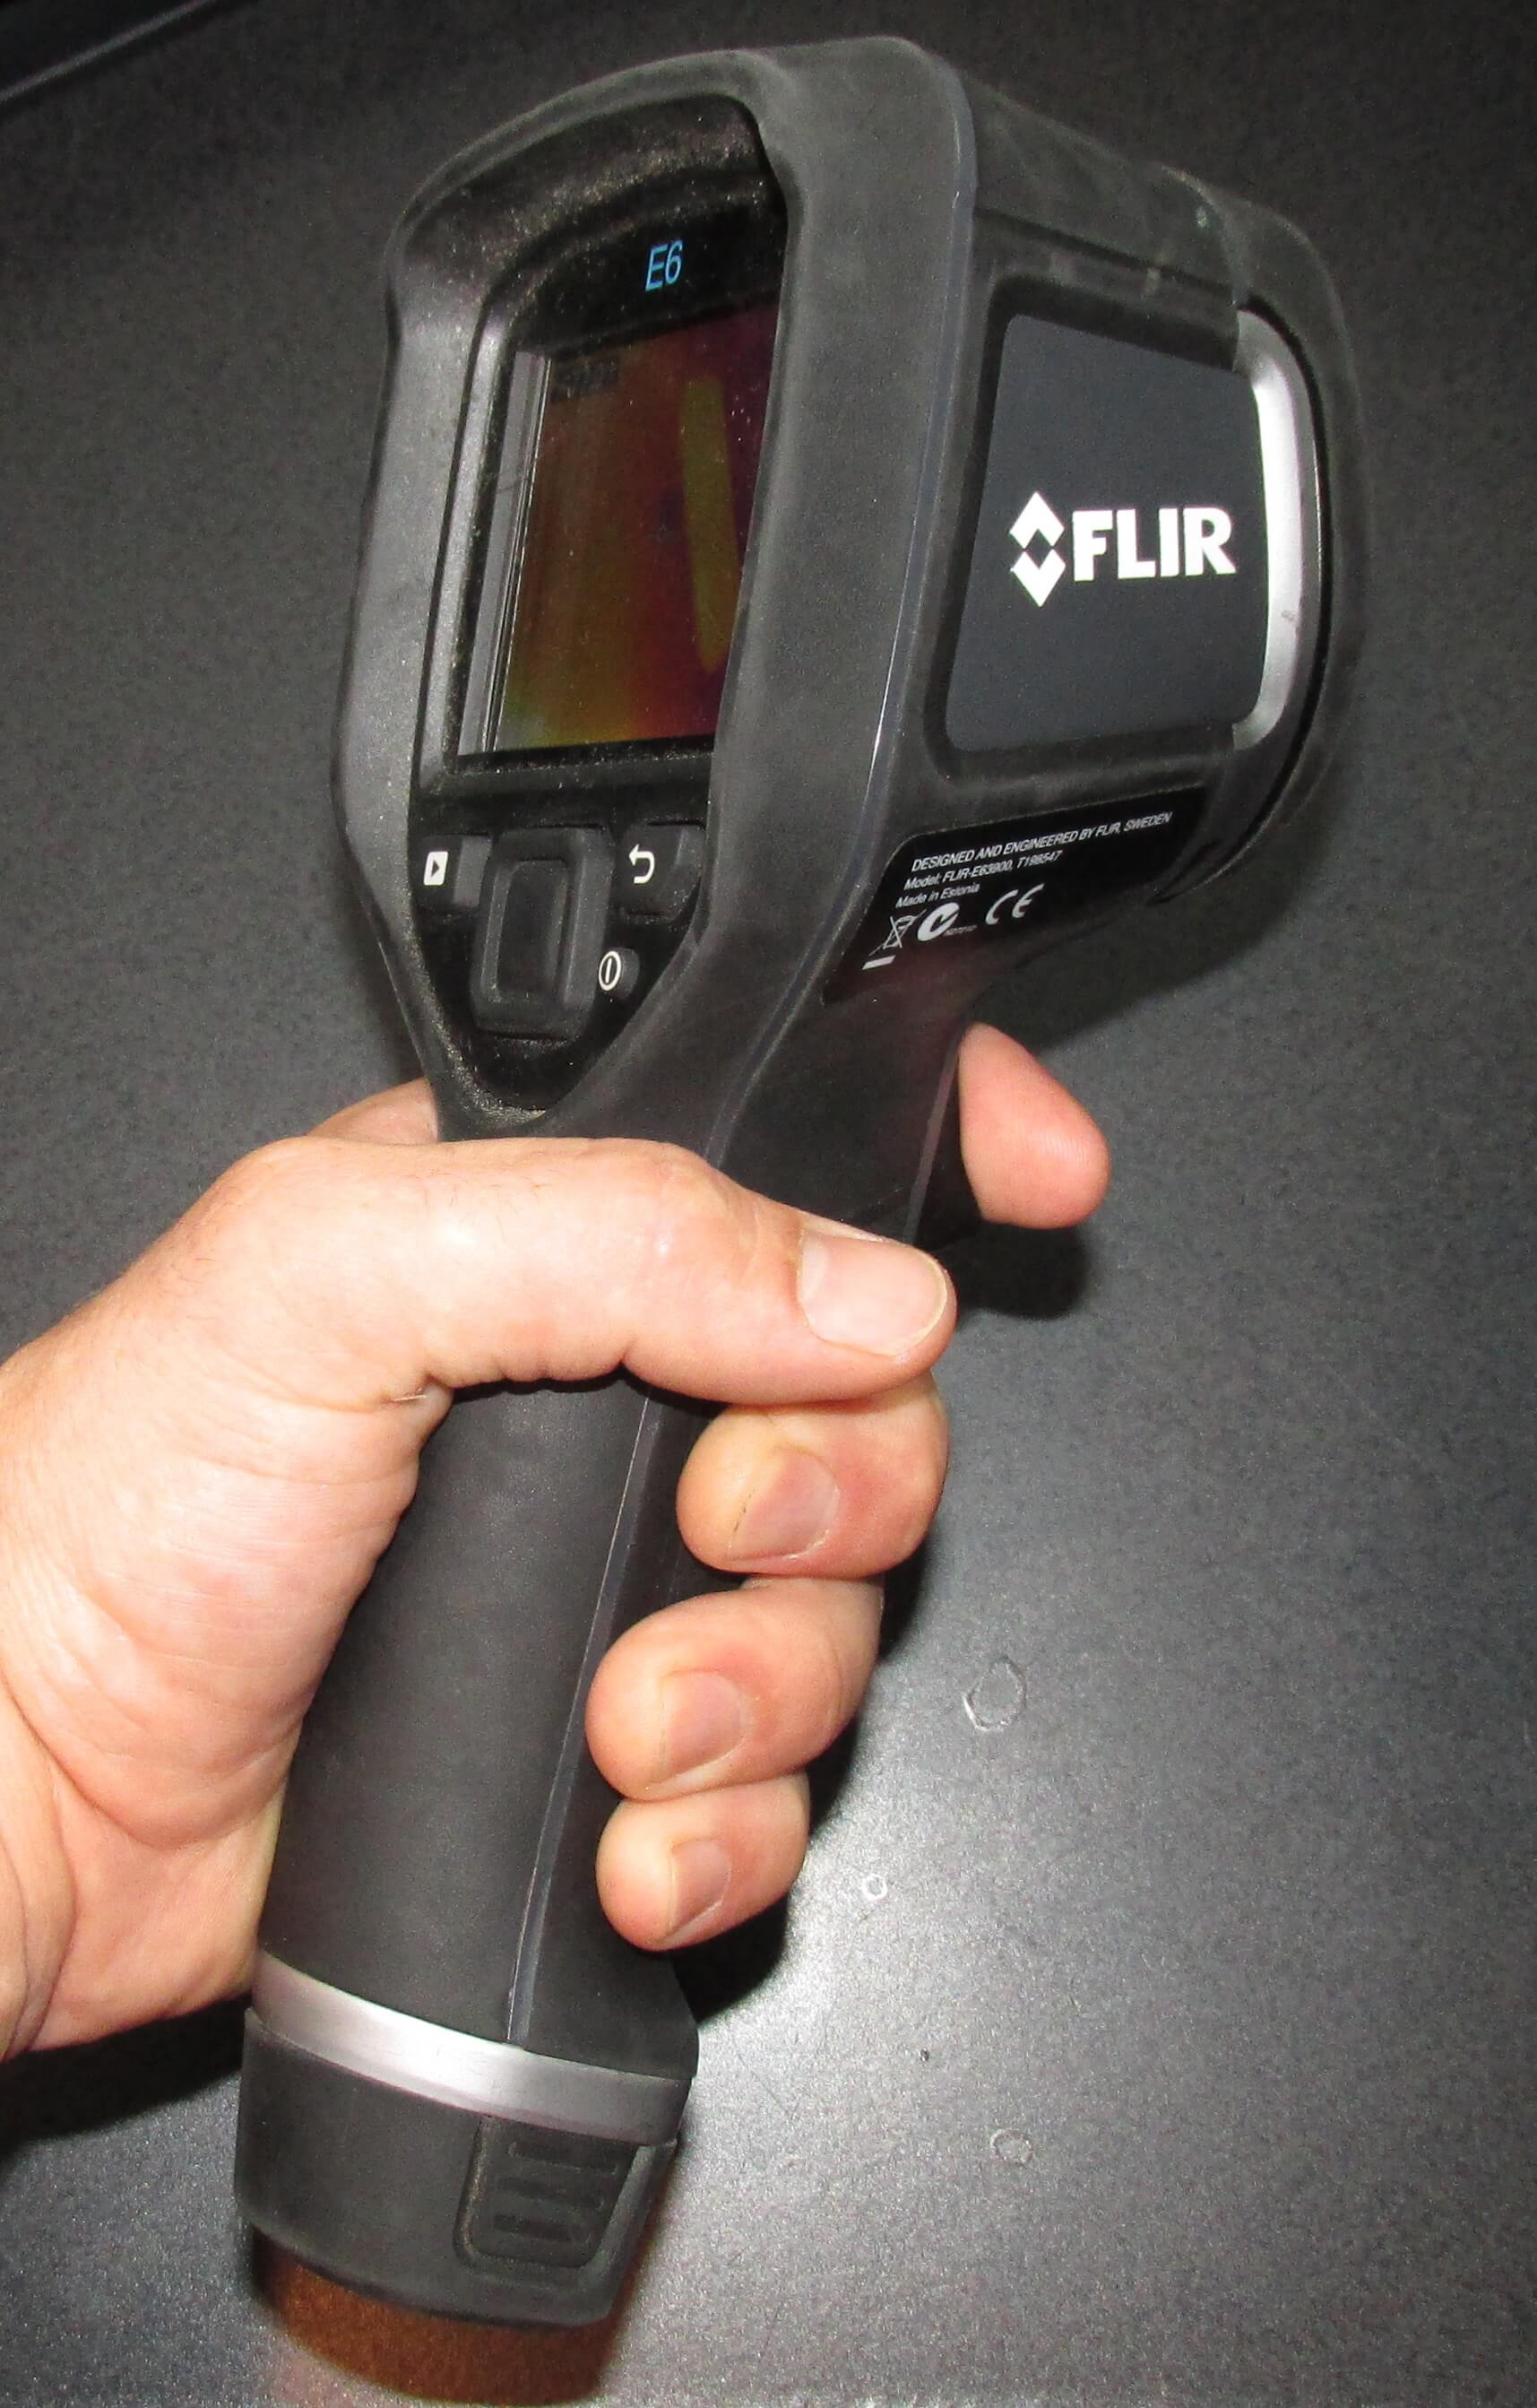 A Home Inspector's Review of the Flir One Infrared Camera for the